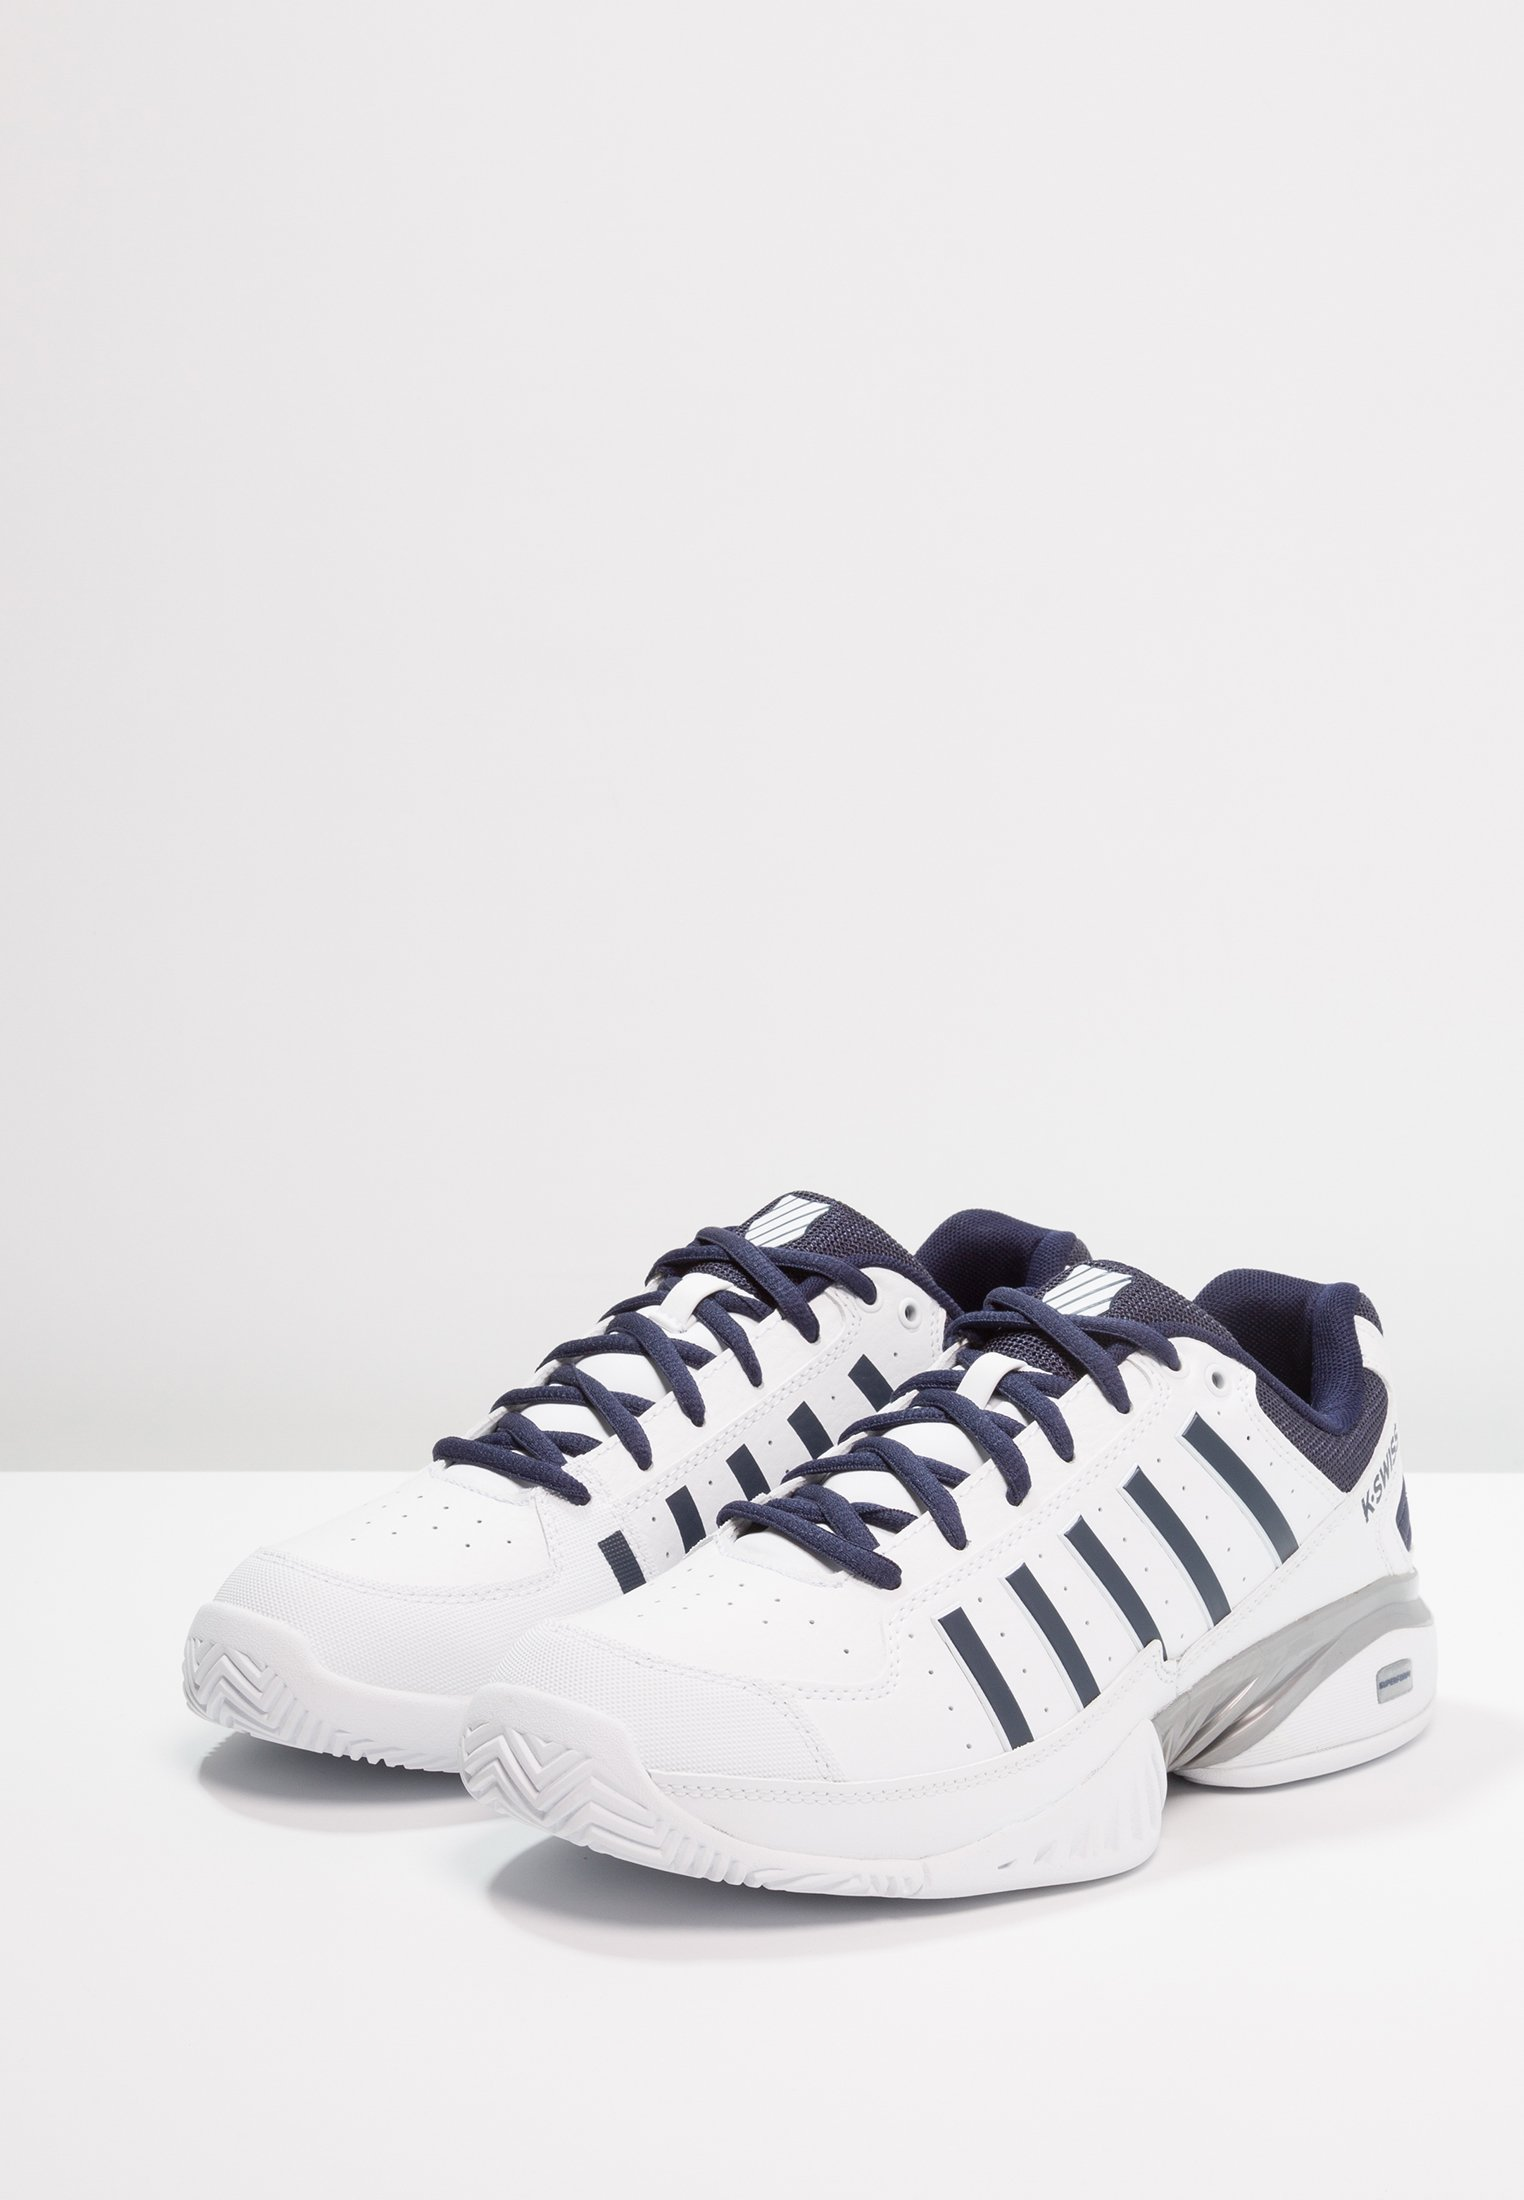 K-SWISS RECEIVER IV - Multicourt Tennisschuh - white/navy/weiß - Herrenschuhe aS7Lp